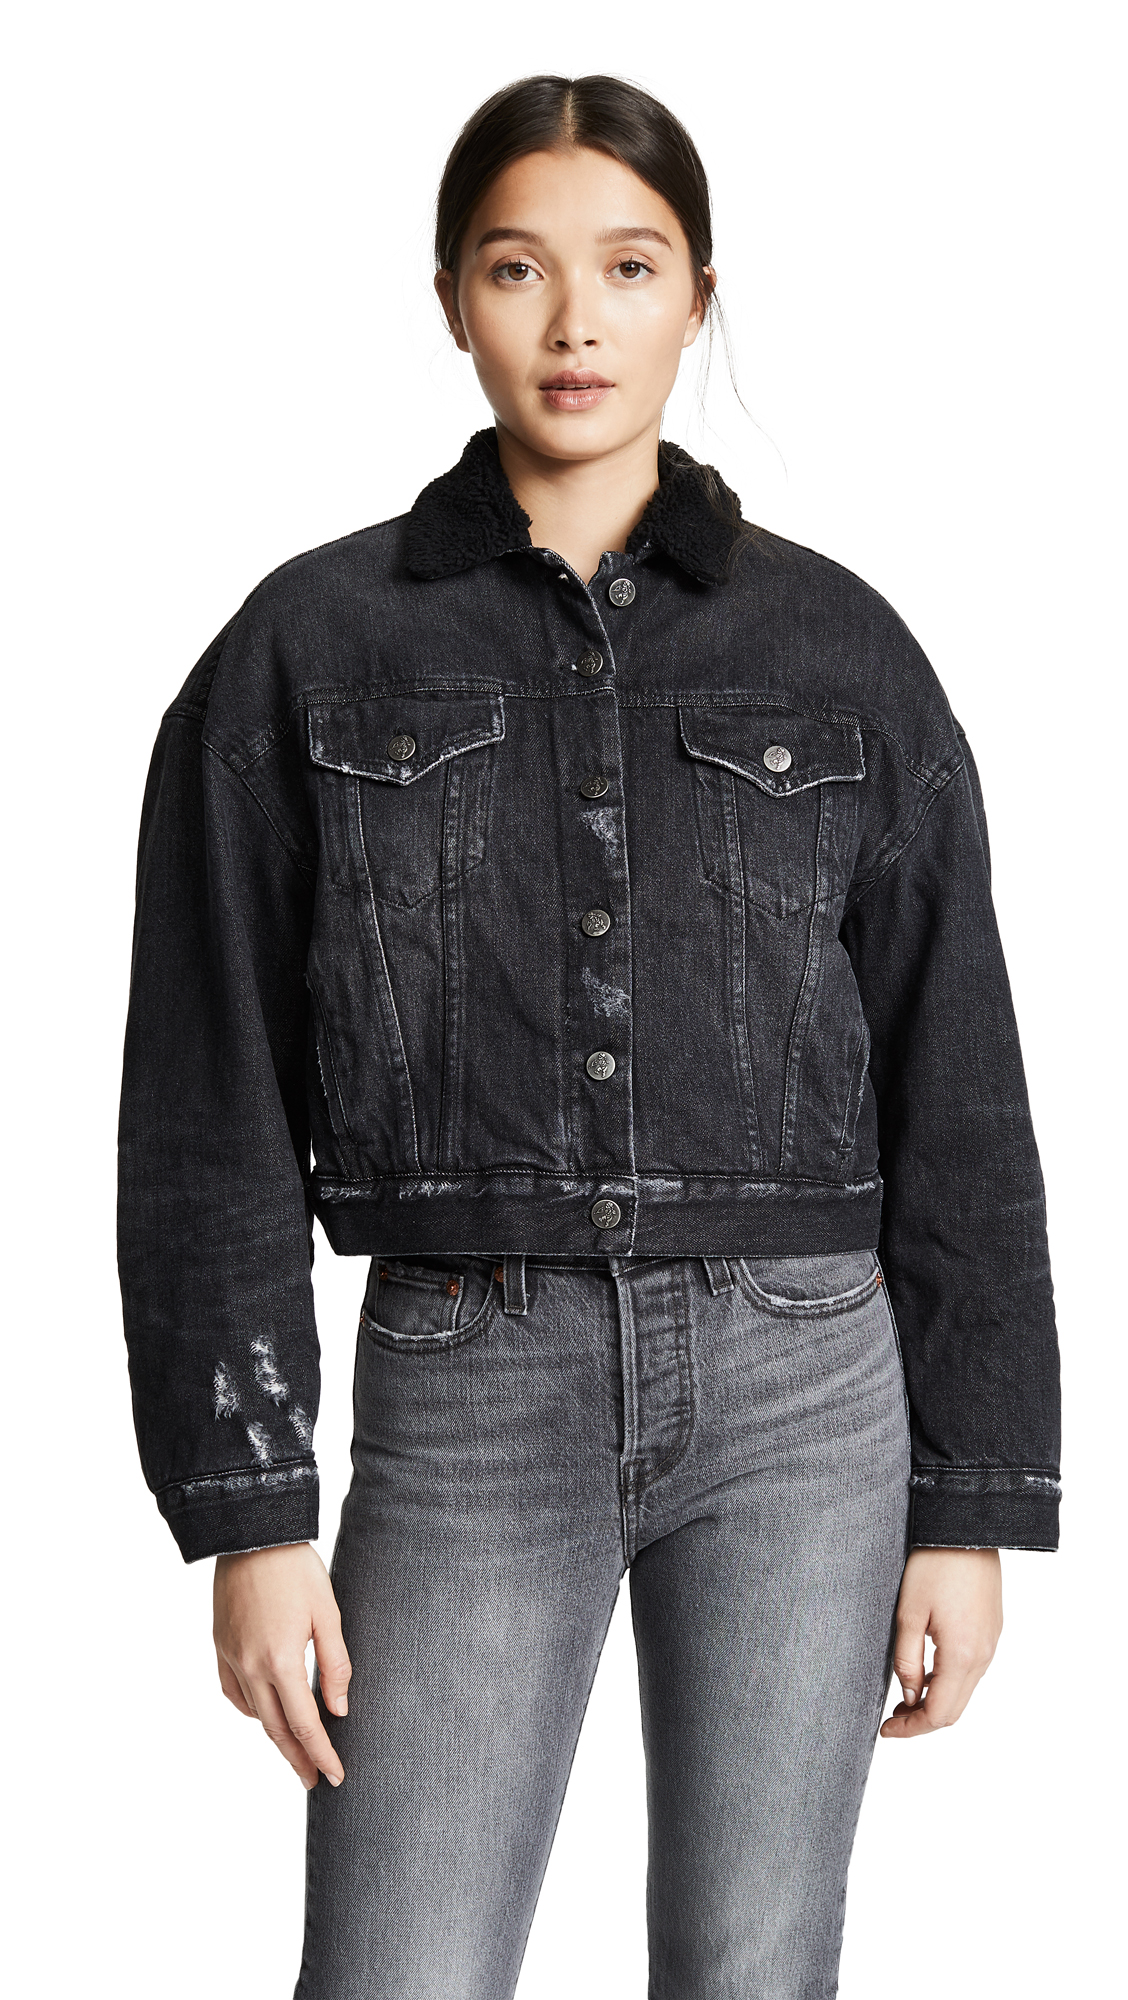 588d9ac79076 Prps Cropped Denim Jacket With Sherpa Lining In Black | ModeSens